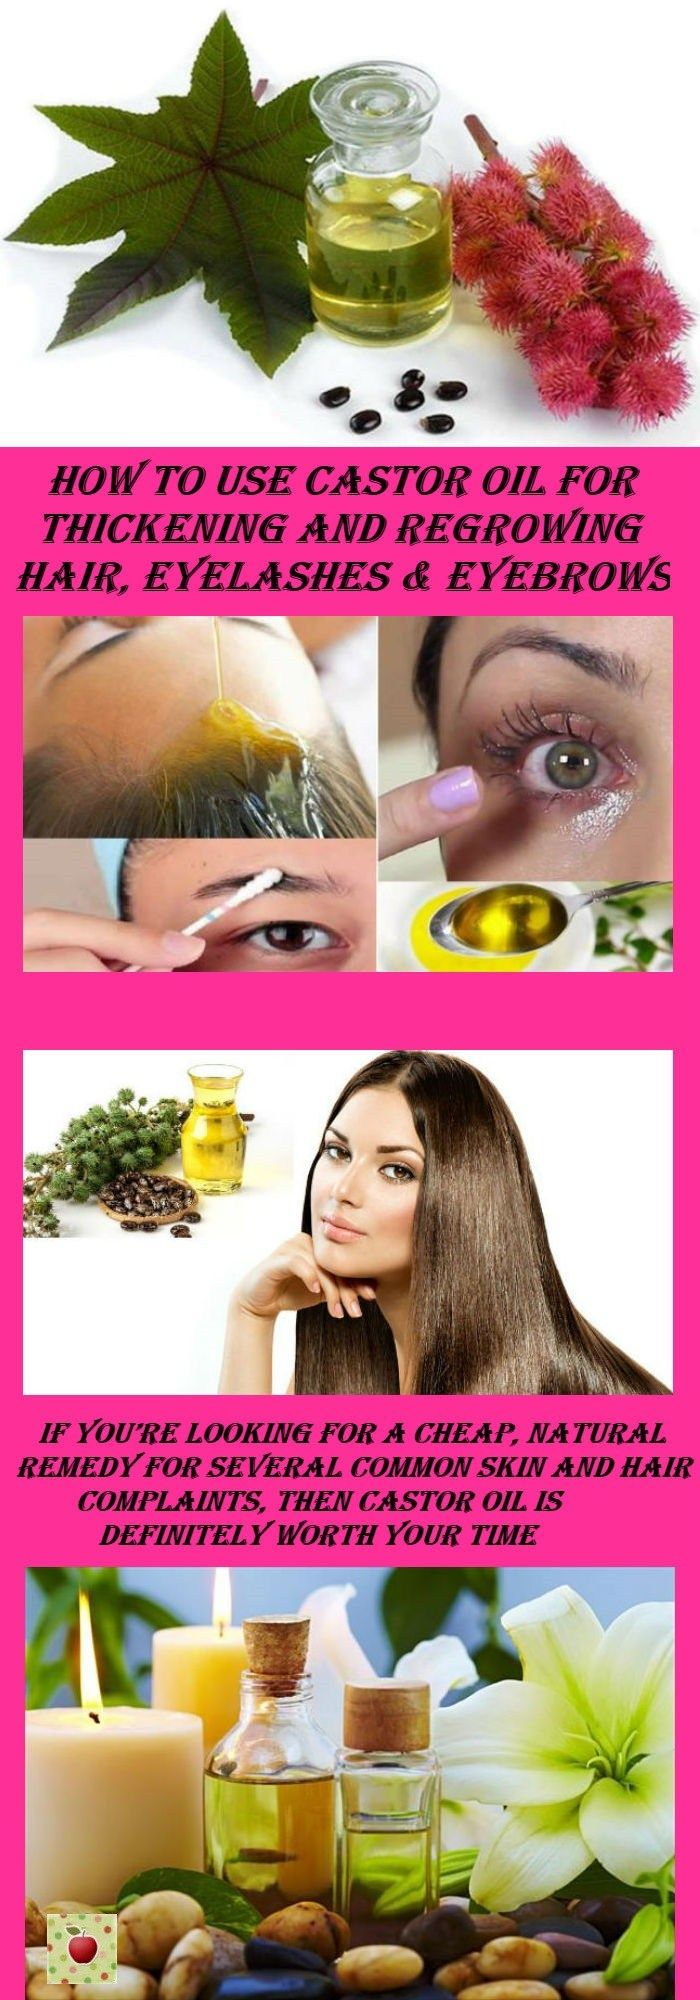 How To Use Castor Oil For Thickening and Regrowing Hair, Eyelashes and Eyebrows